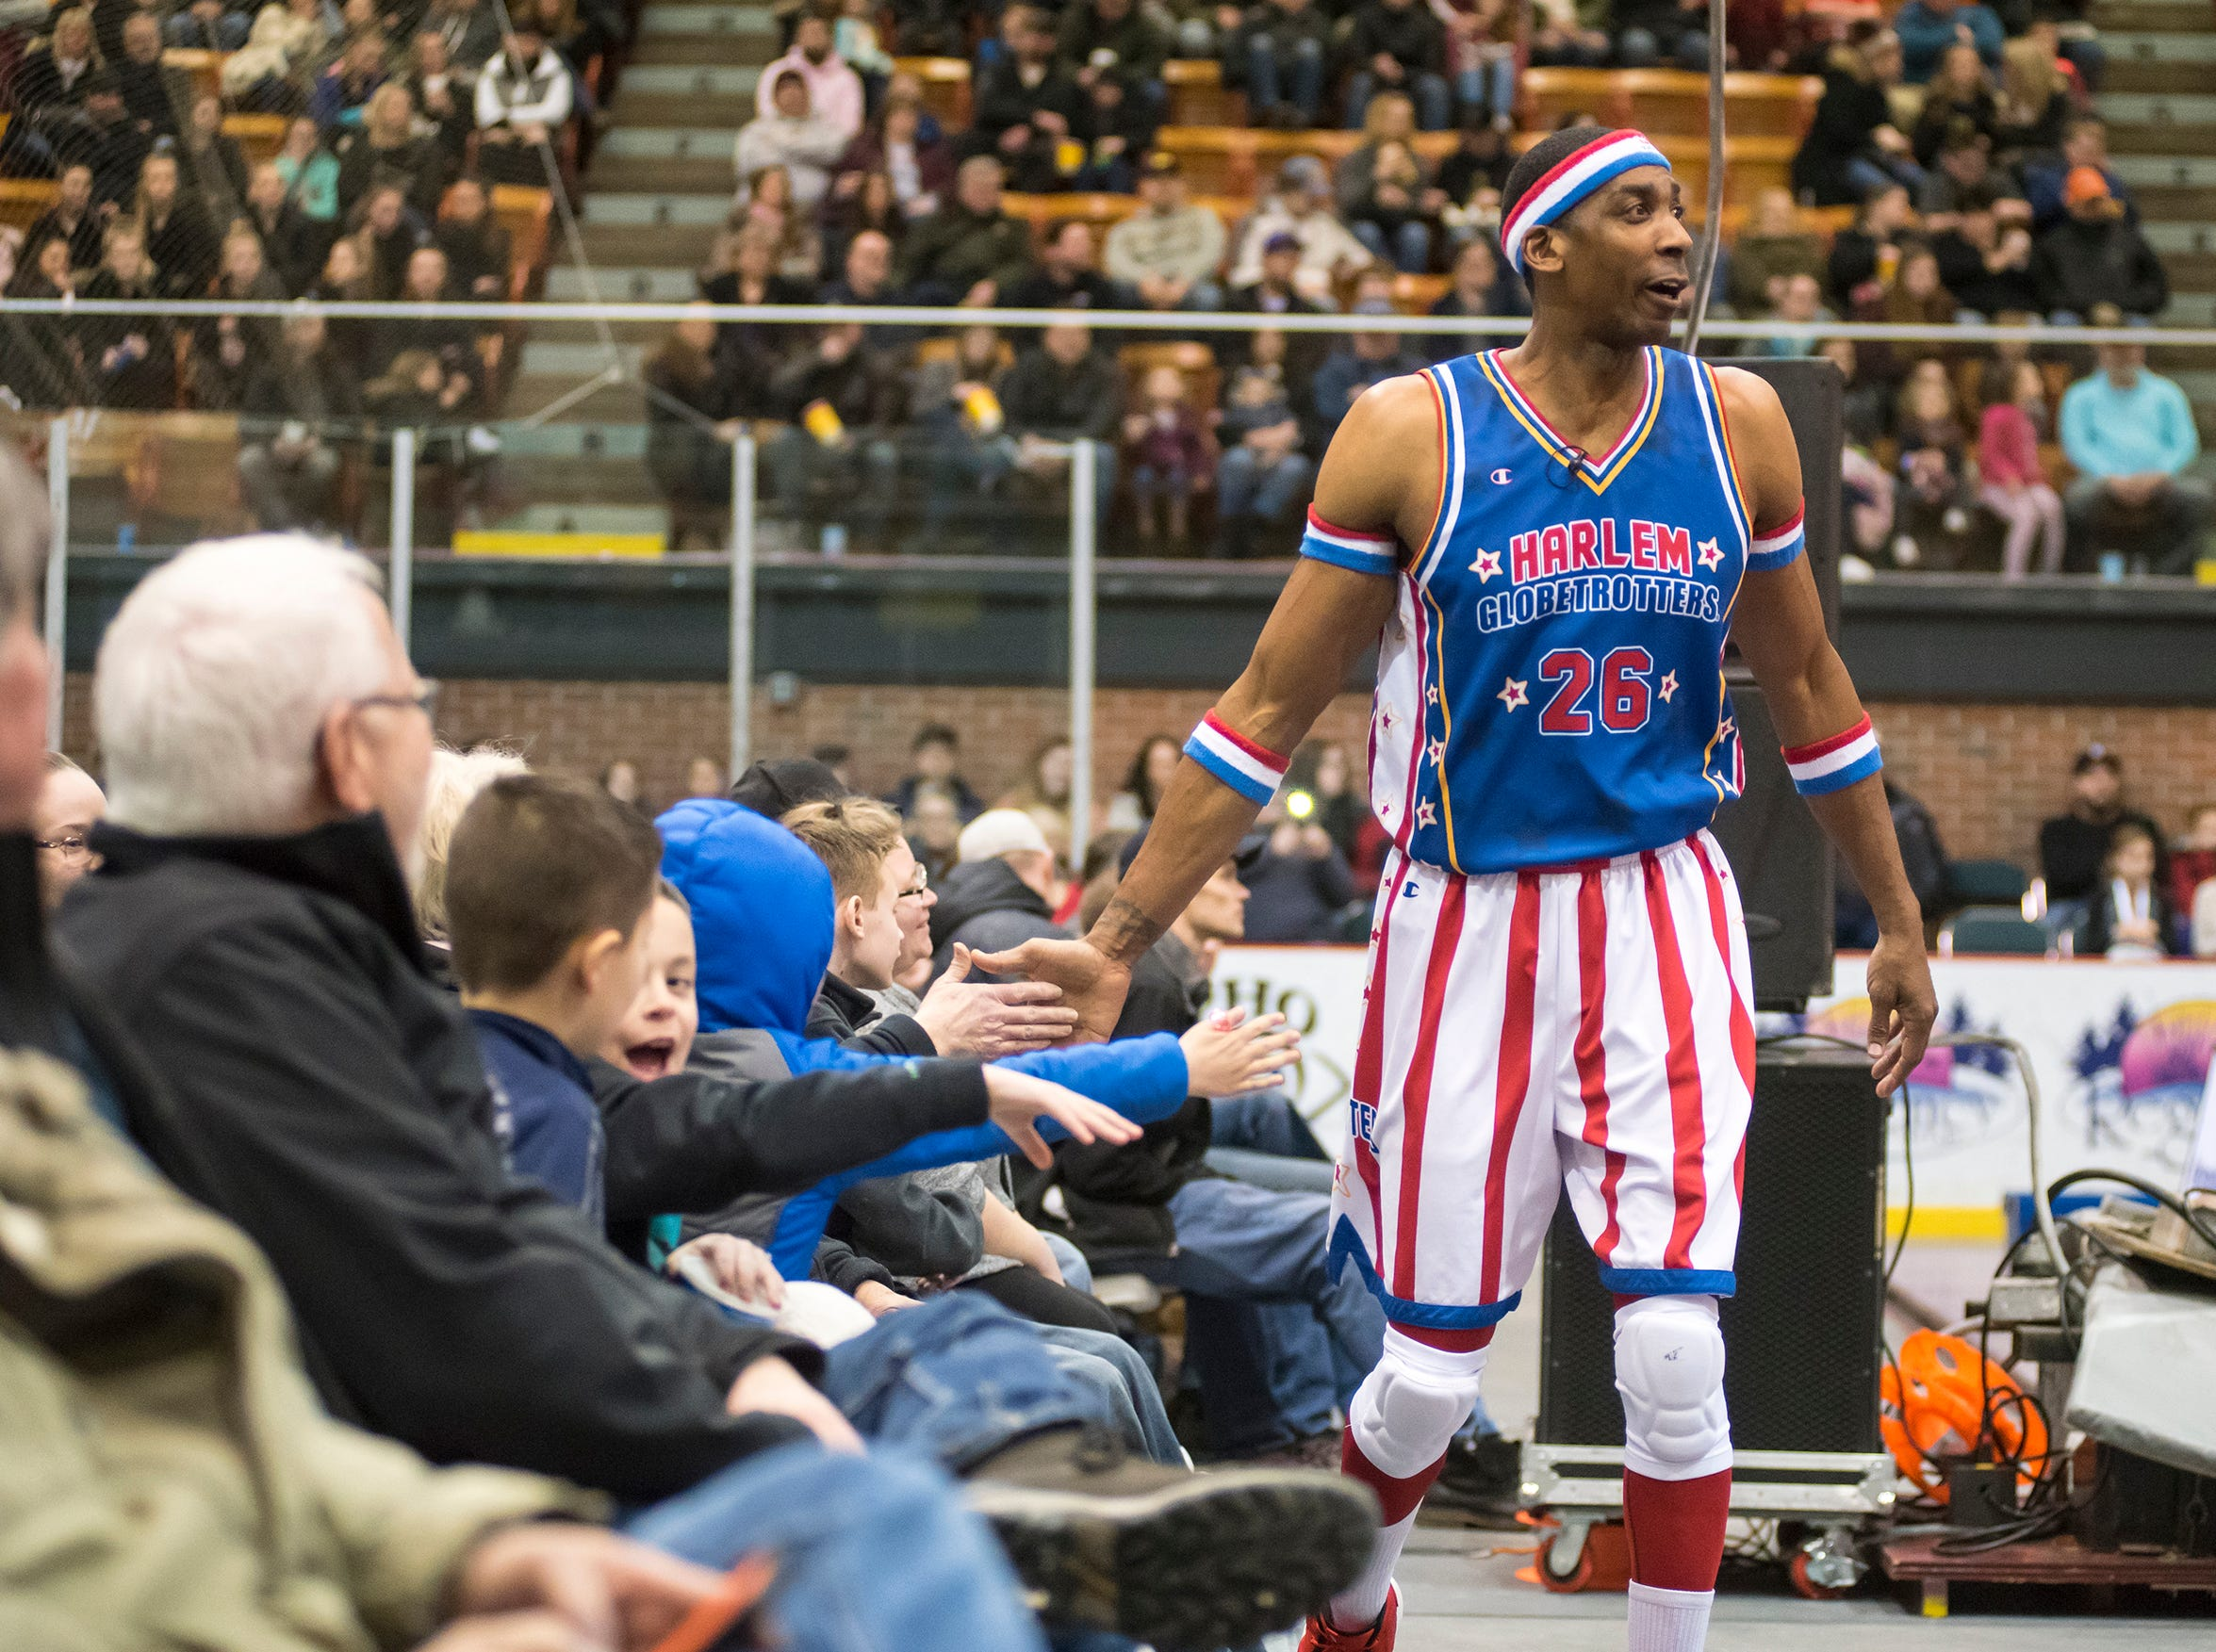 Harlem Globetrotters showman Hi-Lite high-fives fans while they take on the Washington Generals Saturday, Feb. 2, 2019 at McMorran Arena in Port Huron.